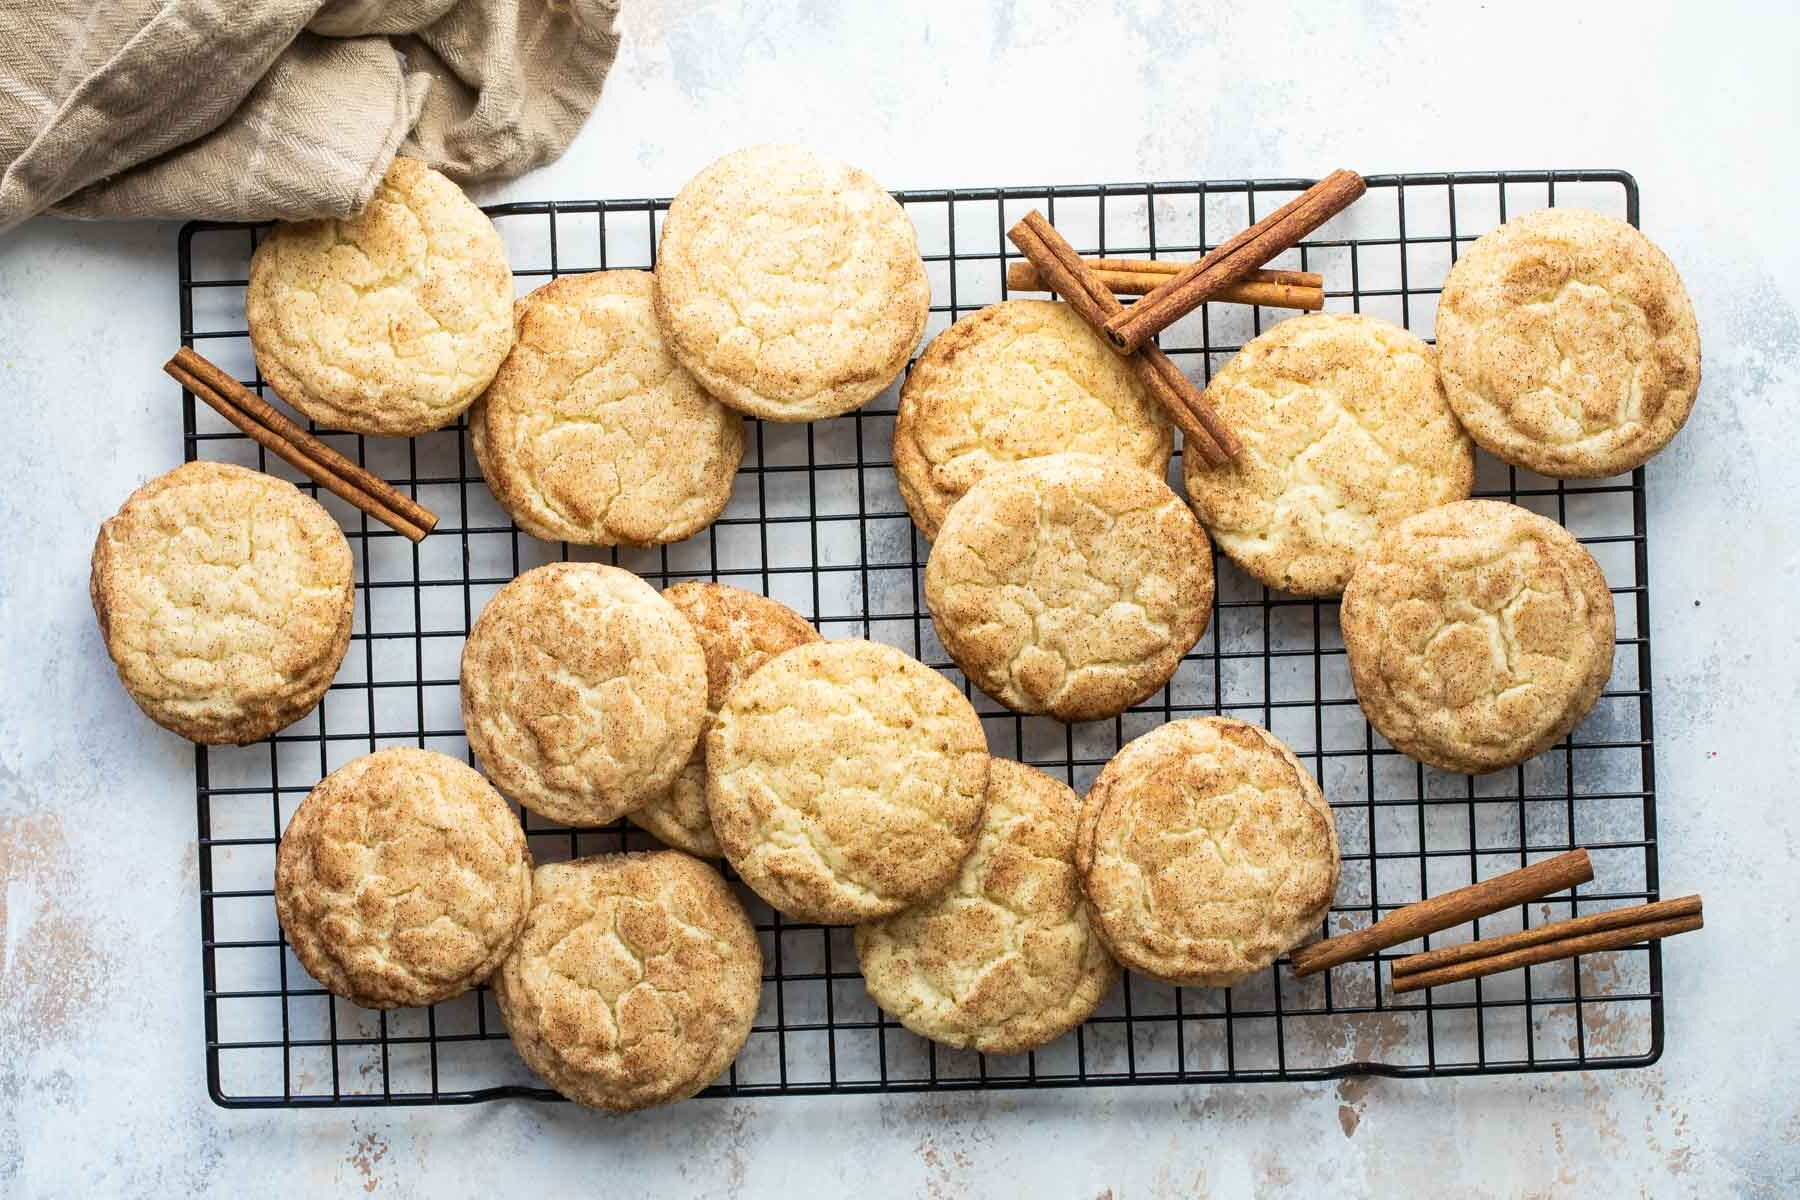 Snickerdoodle cookies on a baking rack.